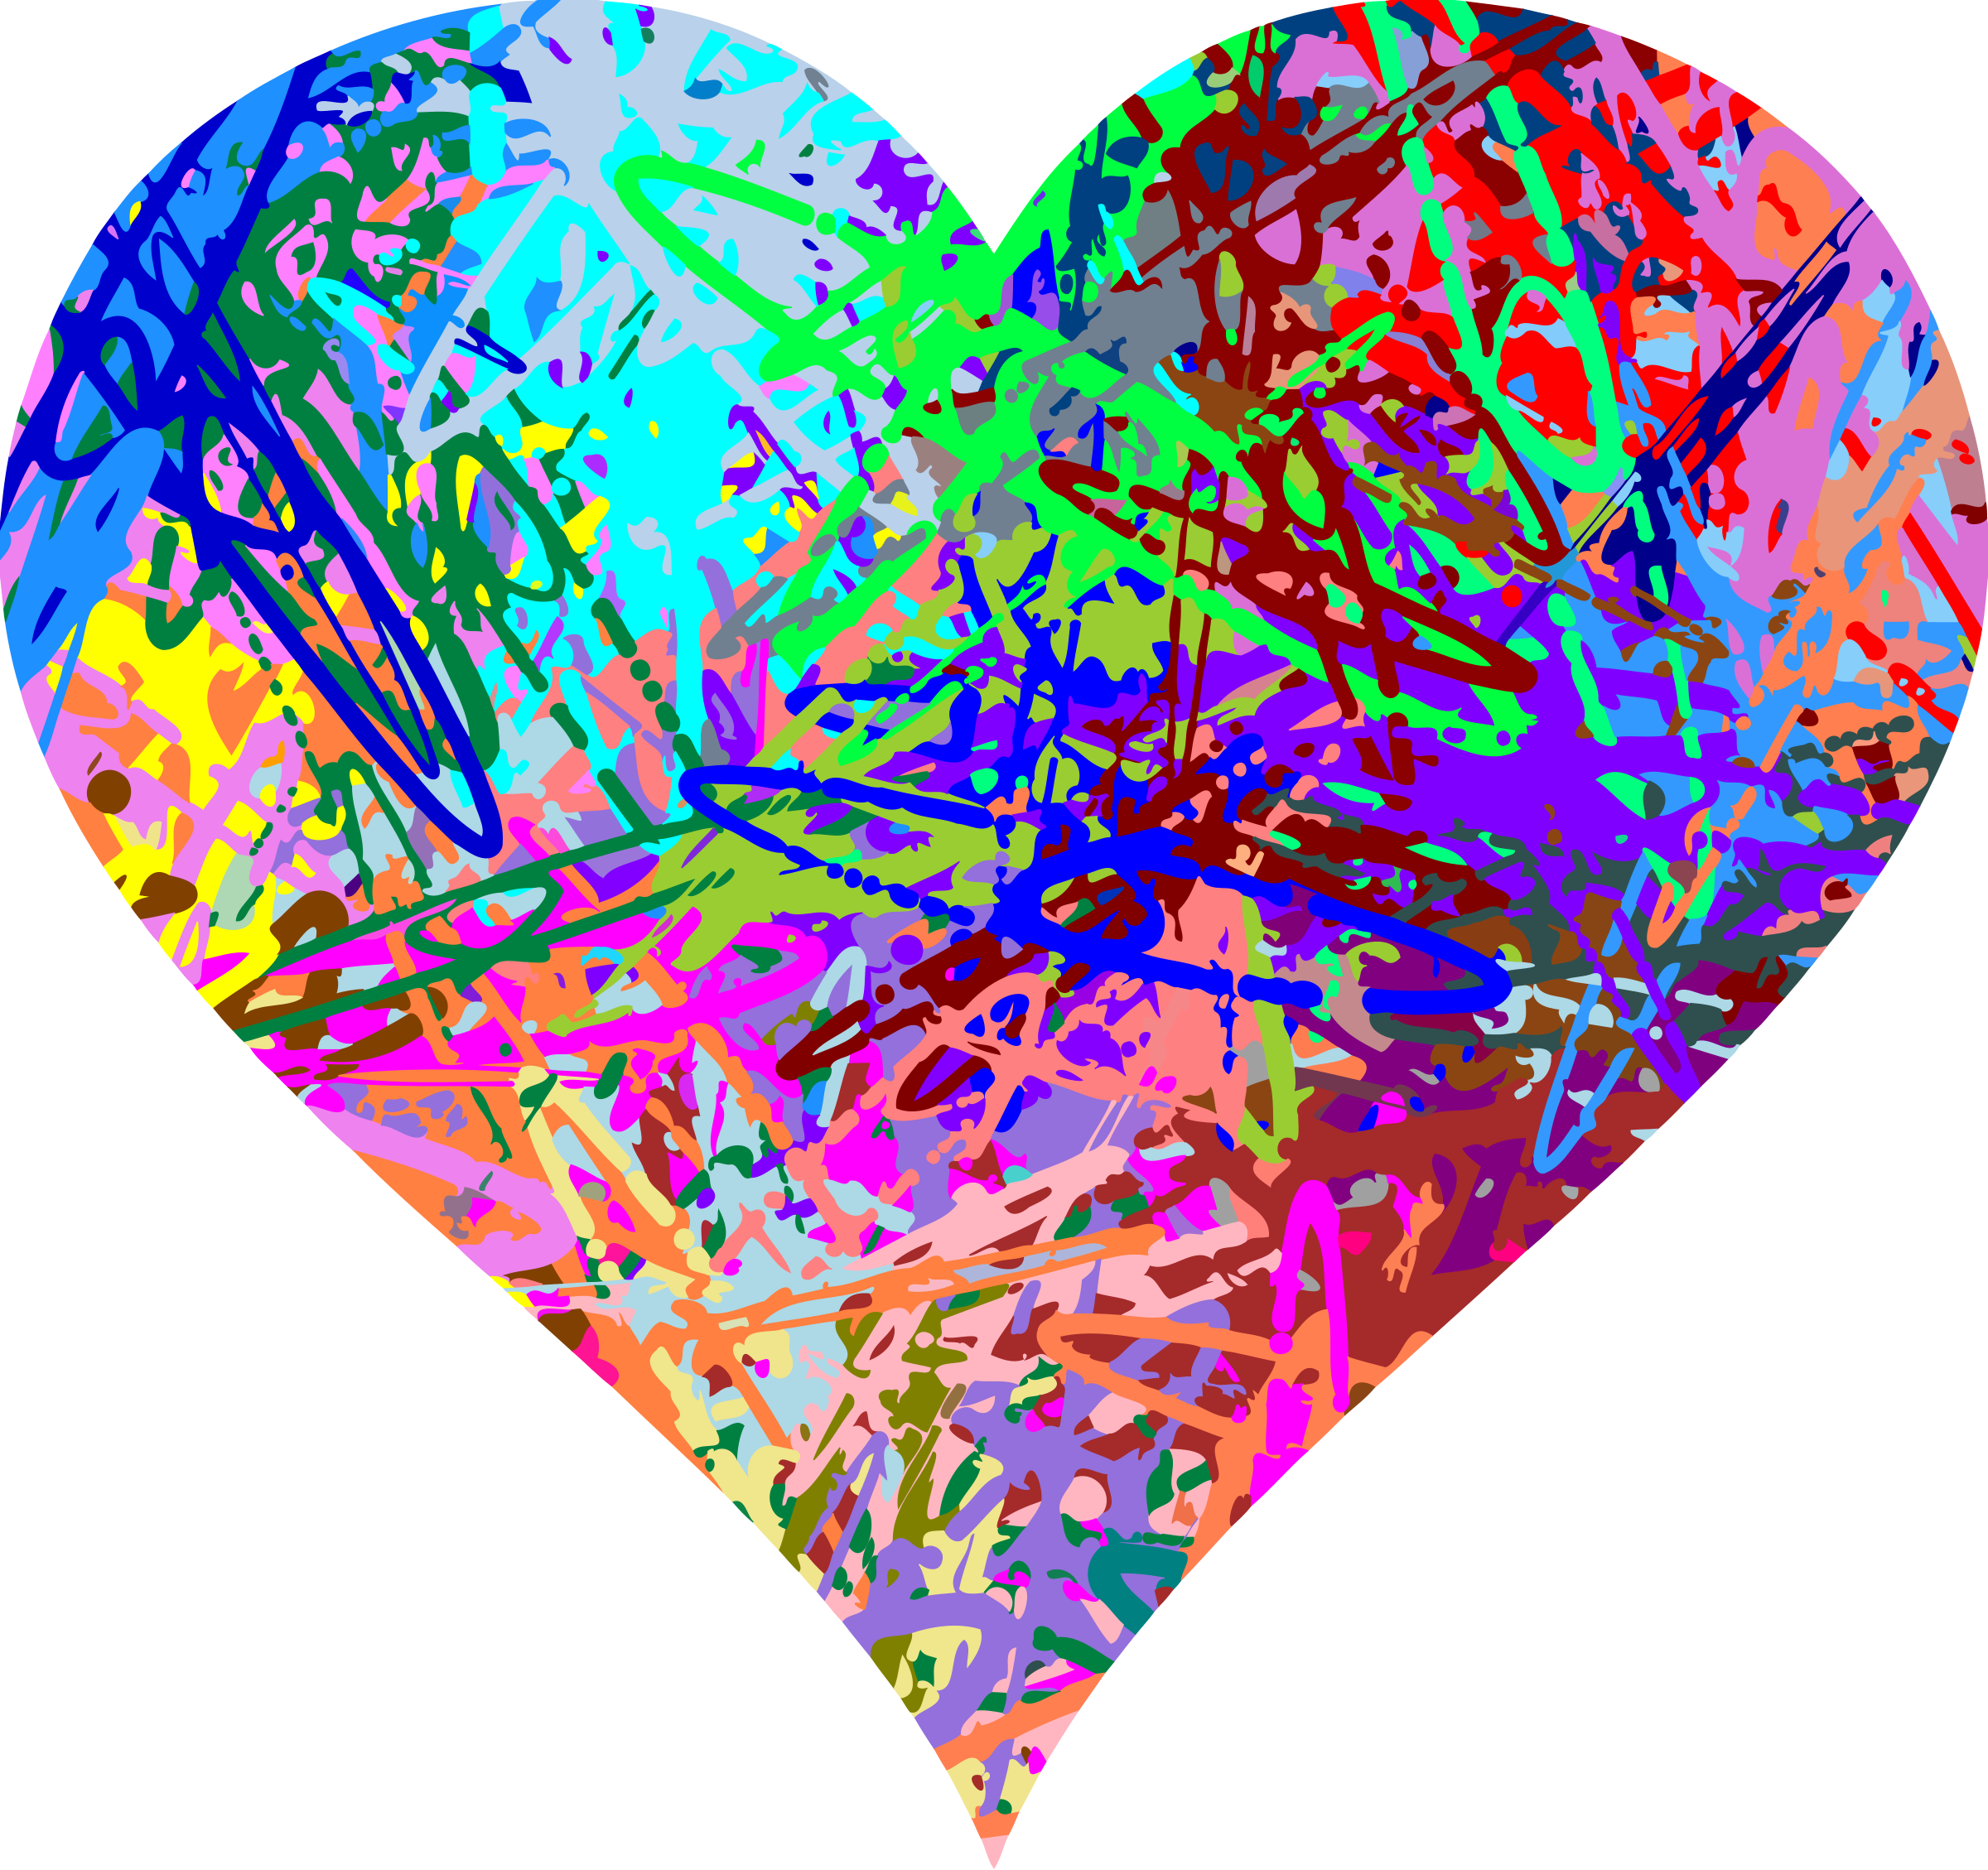 Pollock heart (reduced file size) by Firkin